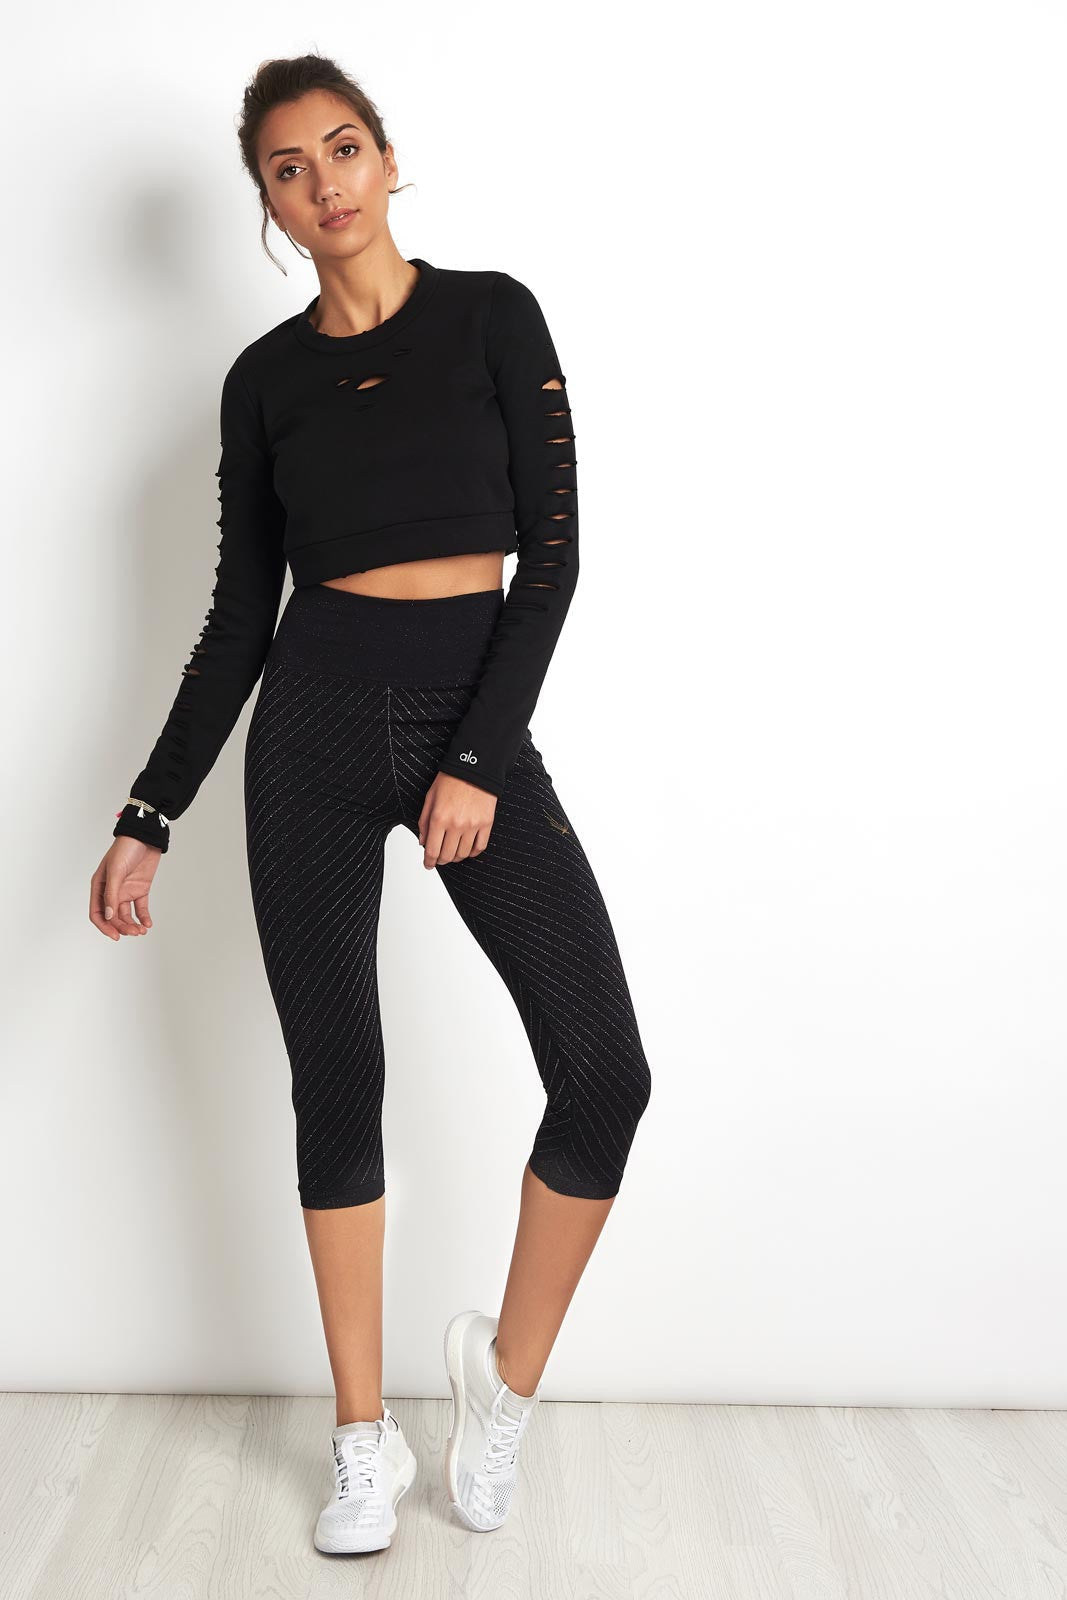 Alo Yoga Ripped Warrior Long Sleeve Black image 4 - The Sports Edit